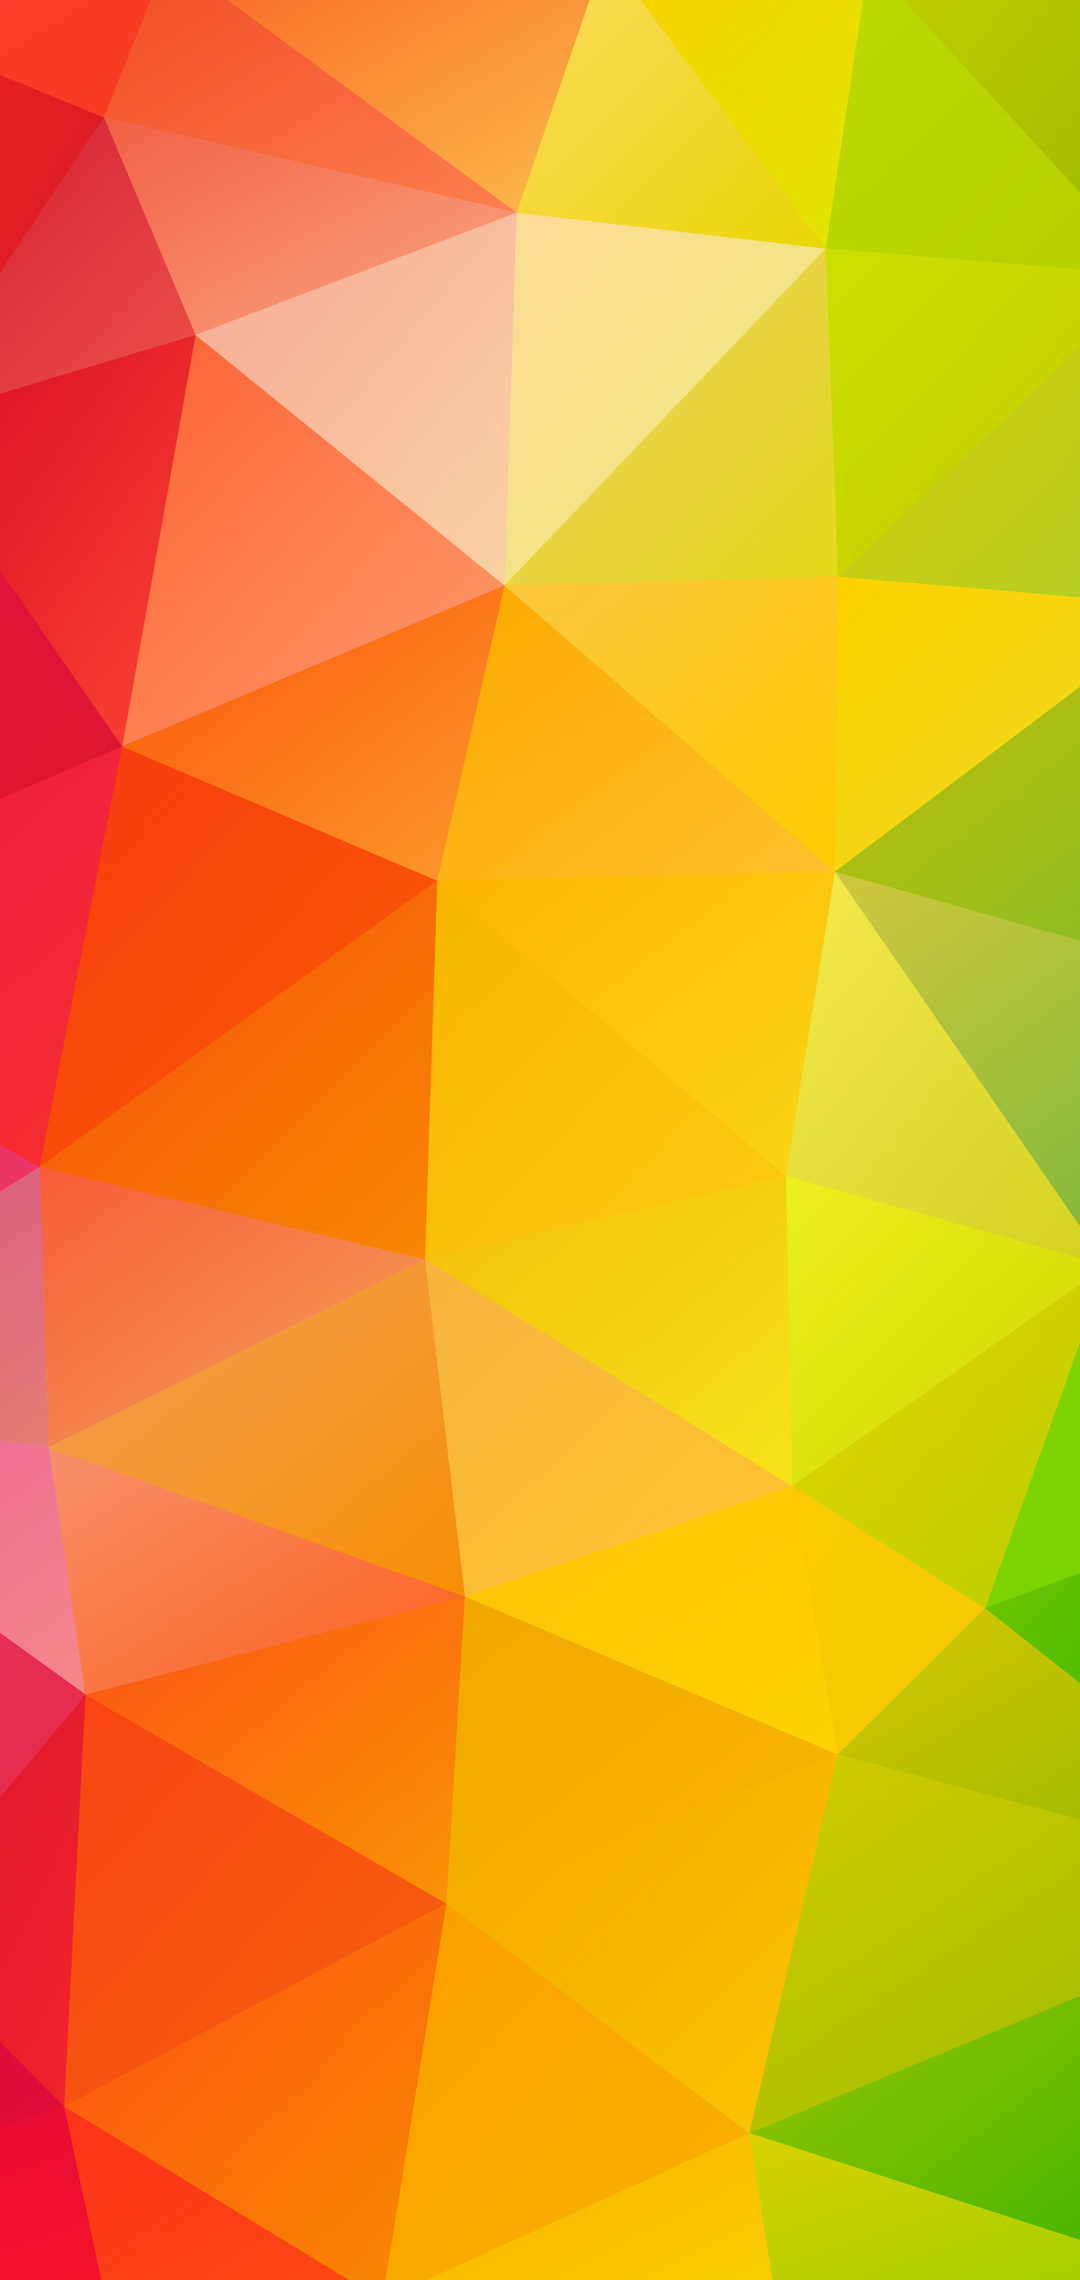 triangles-colorful-background-nz.jpg